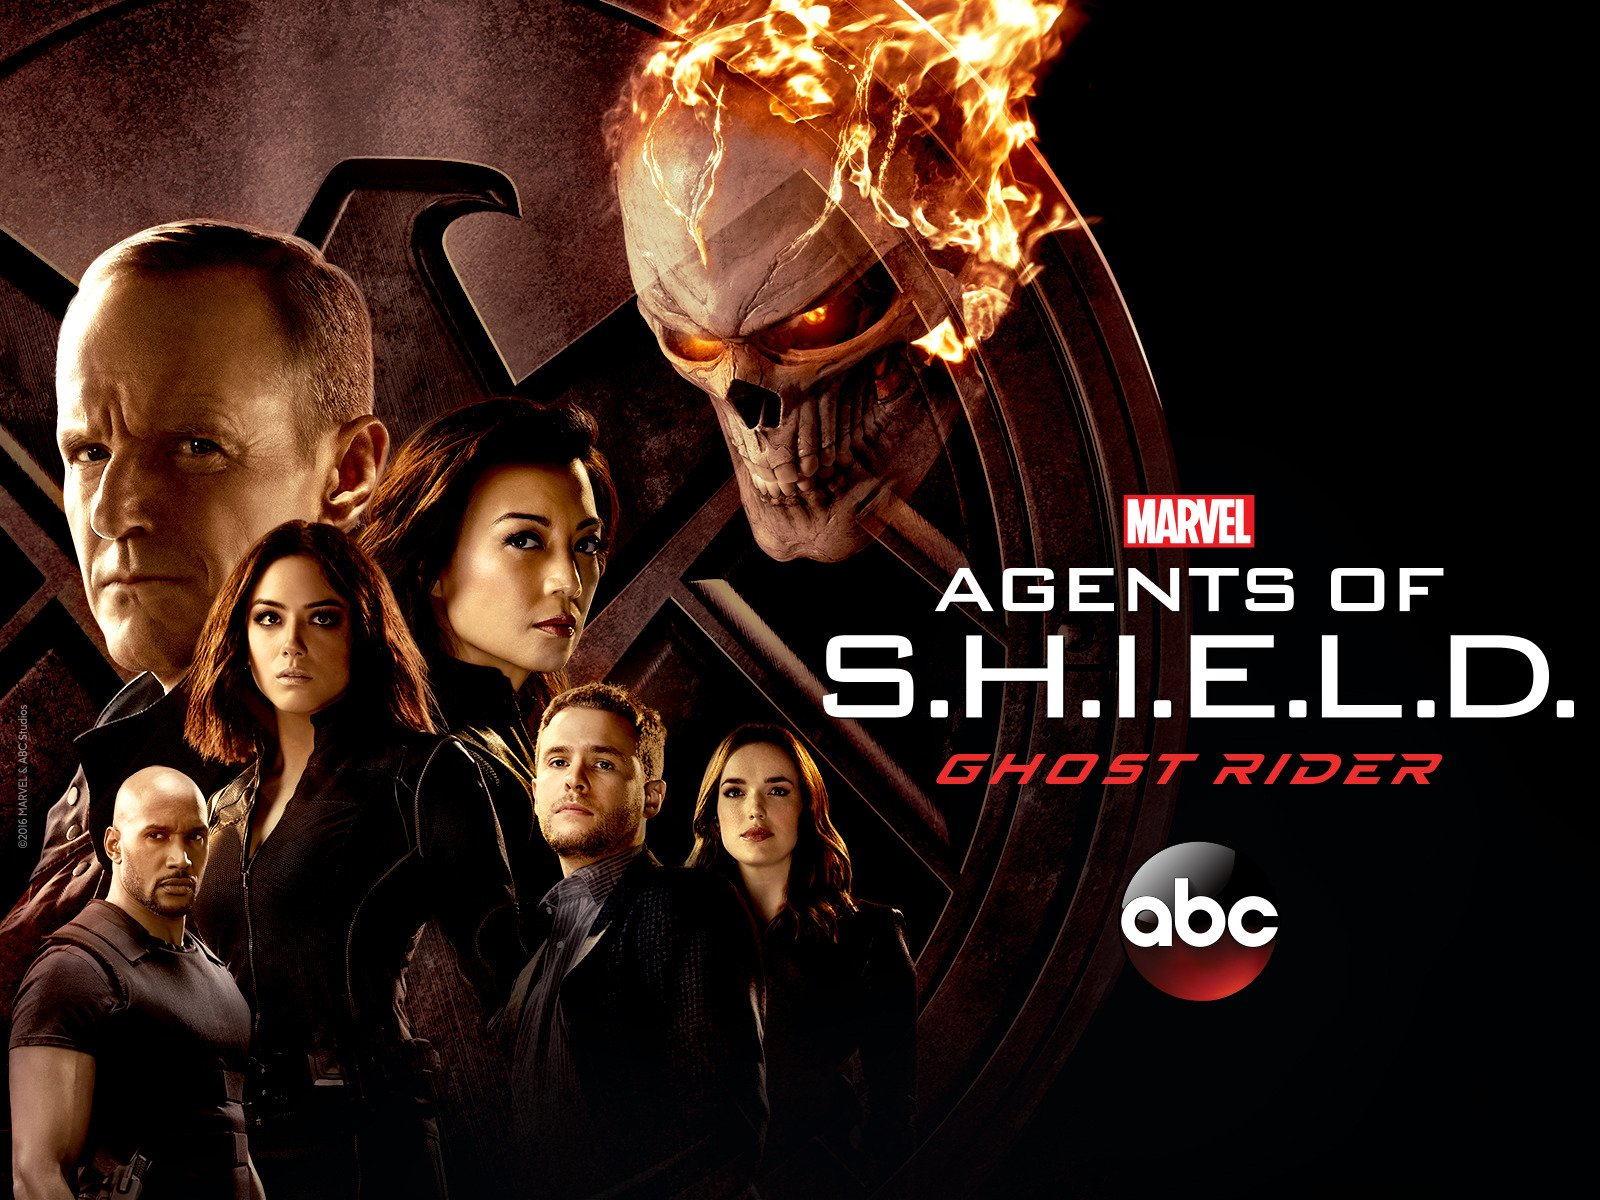 agents of shield season 5 episode 14 torrent download